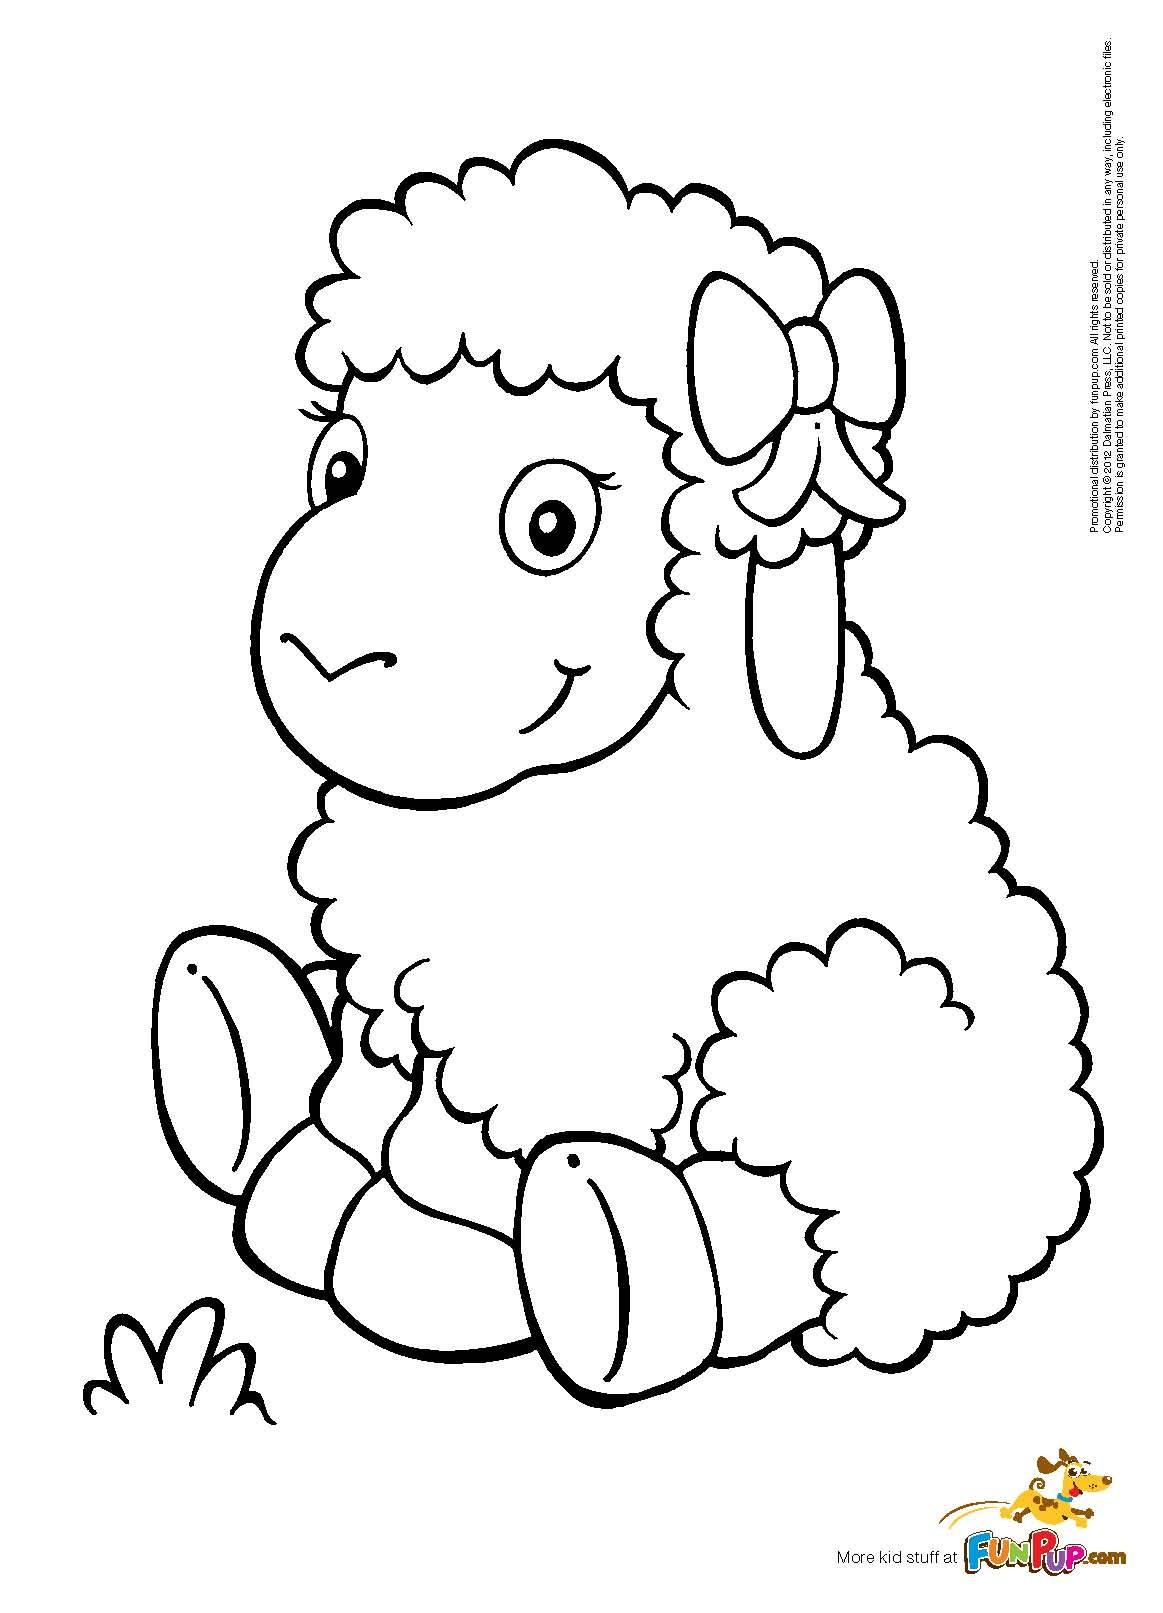 1163x1613 Endorsed Baby Sheep Coloring Pages